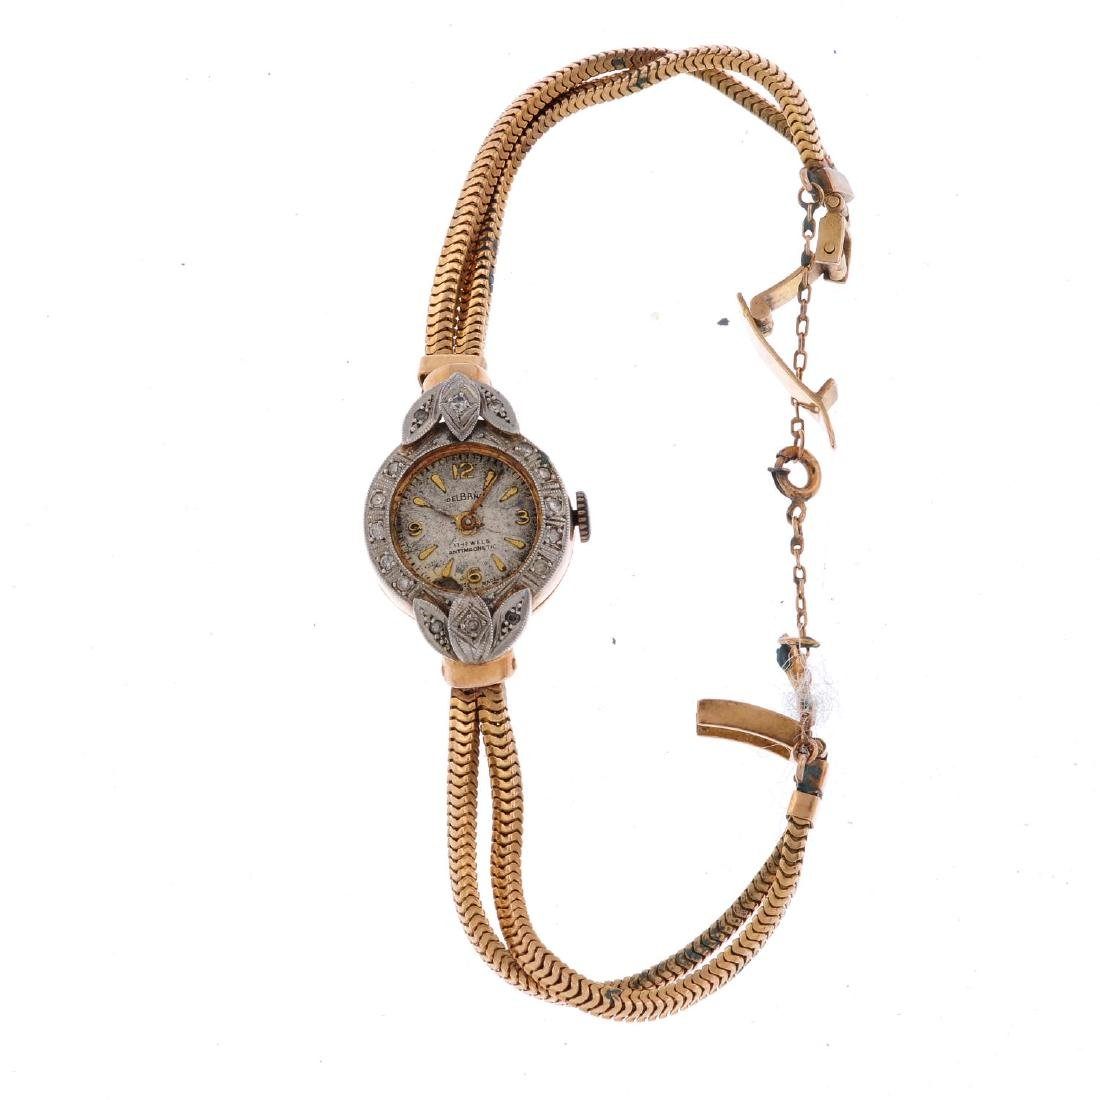 DELBANA - a lady's cocktail  watch. Yellow metal